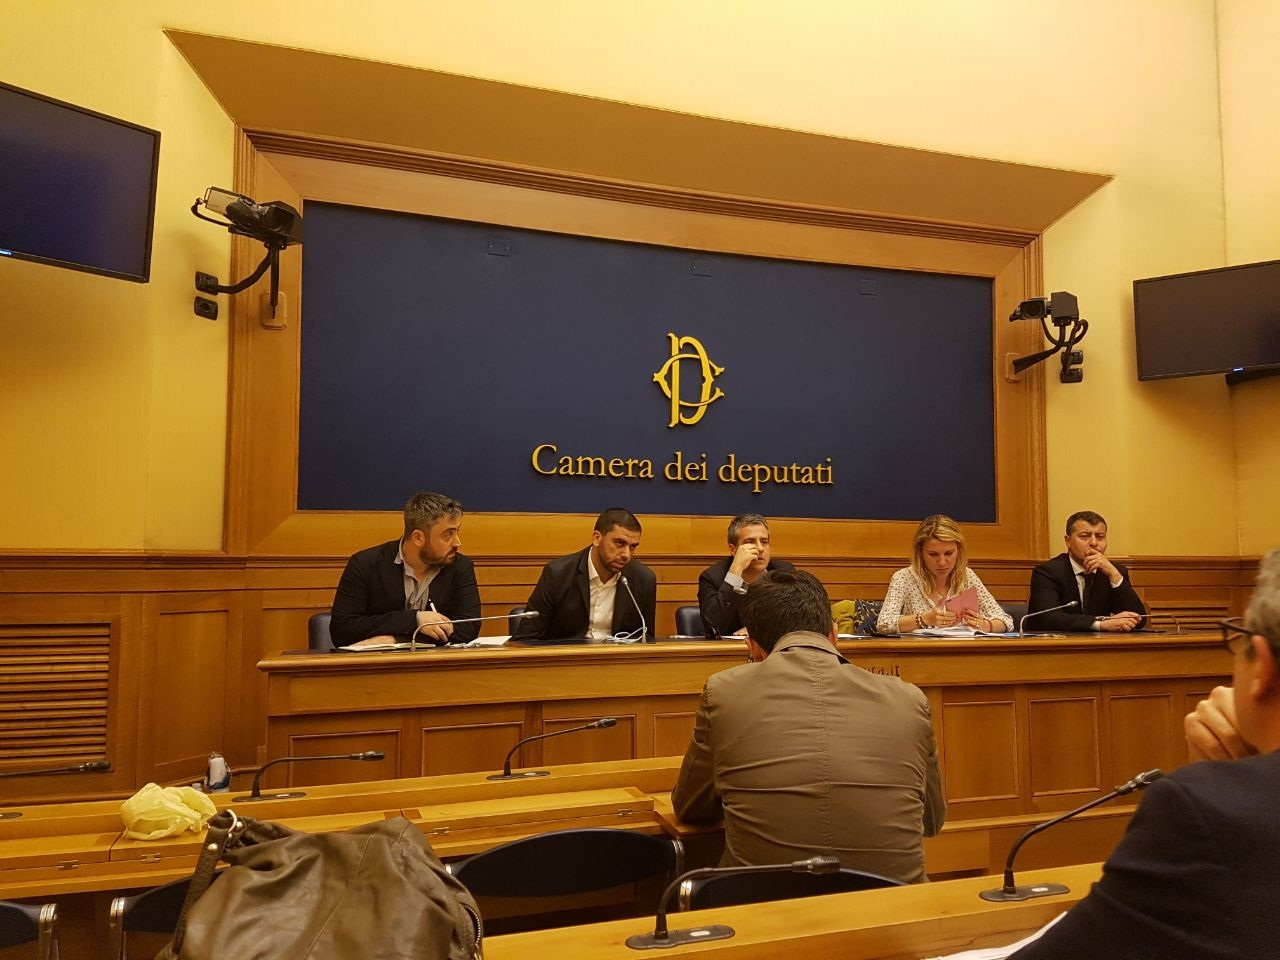 Camera dei deputati italiani conferenza stampa su libano for Rassegna stampa camera deputati